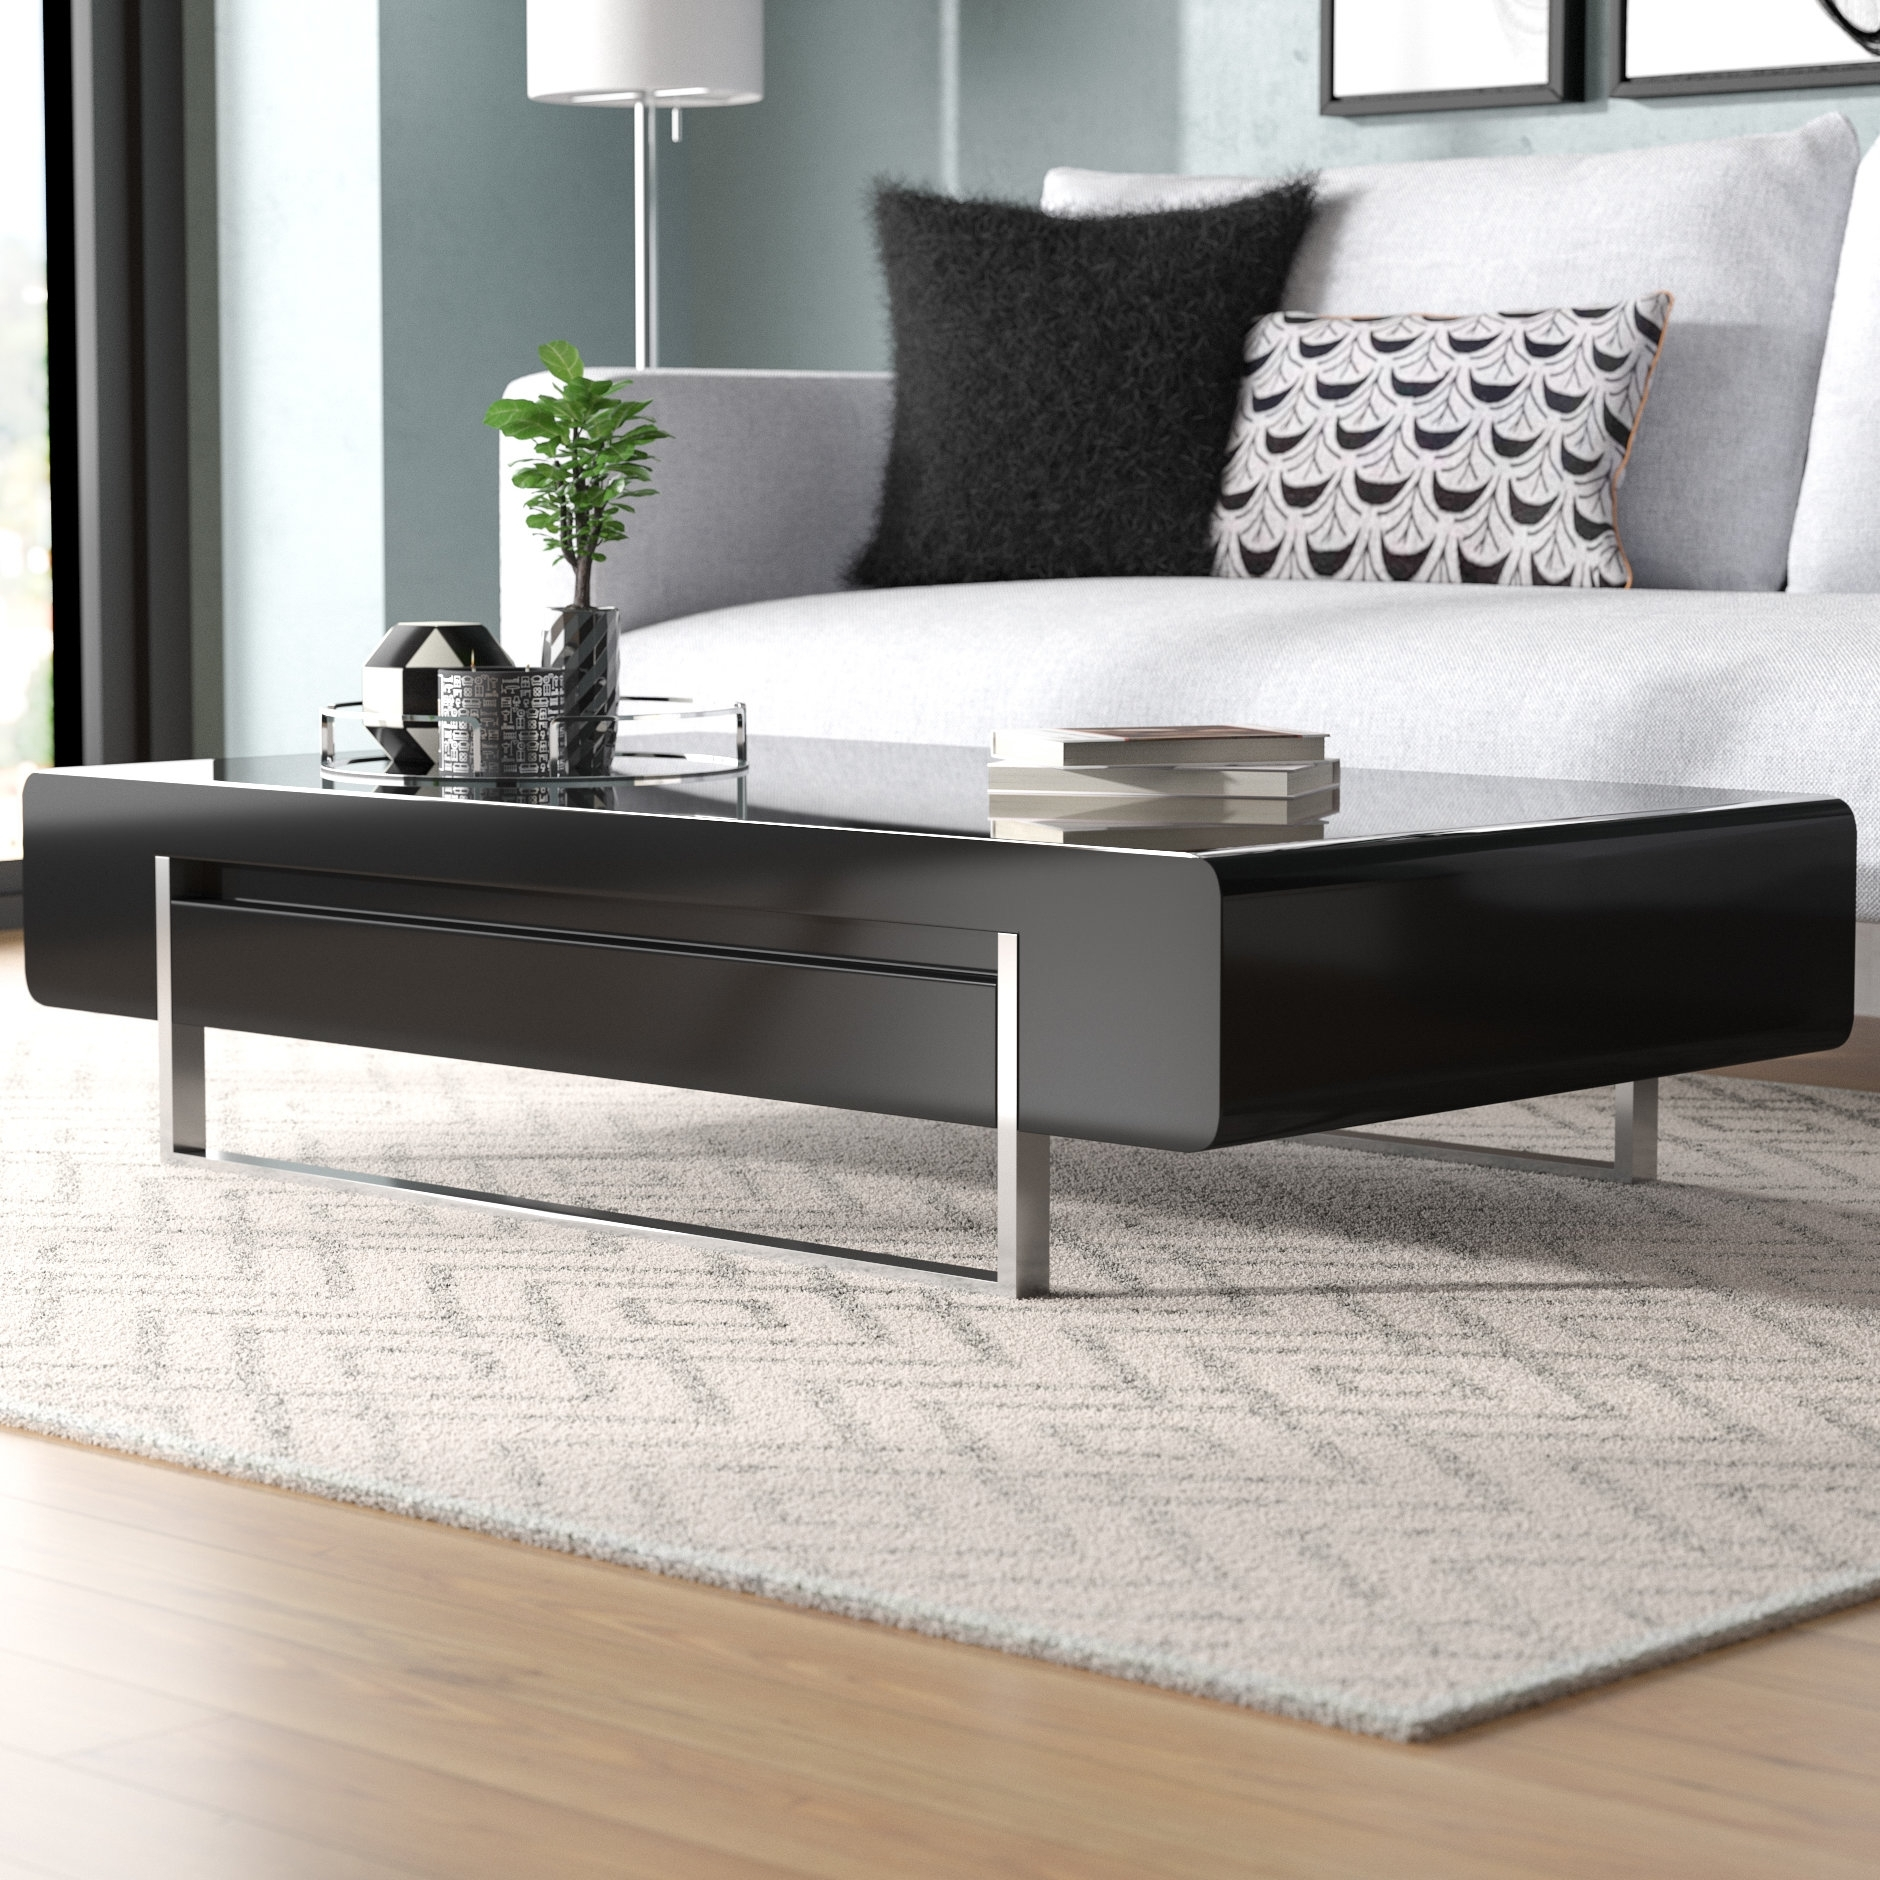 Orren Ellis Griner Modern Coffee Table & Reviews | Wayfair intended for Stack Hi-Gloss Wood Coffee Tables (Image 21 of 30)